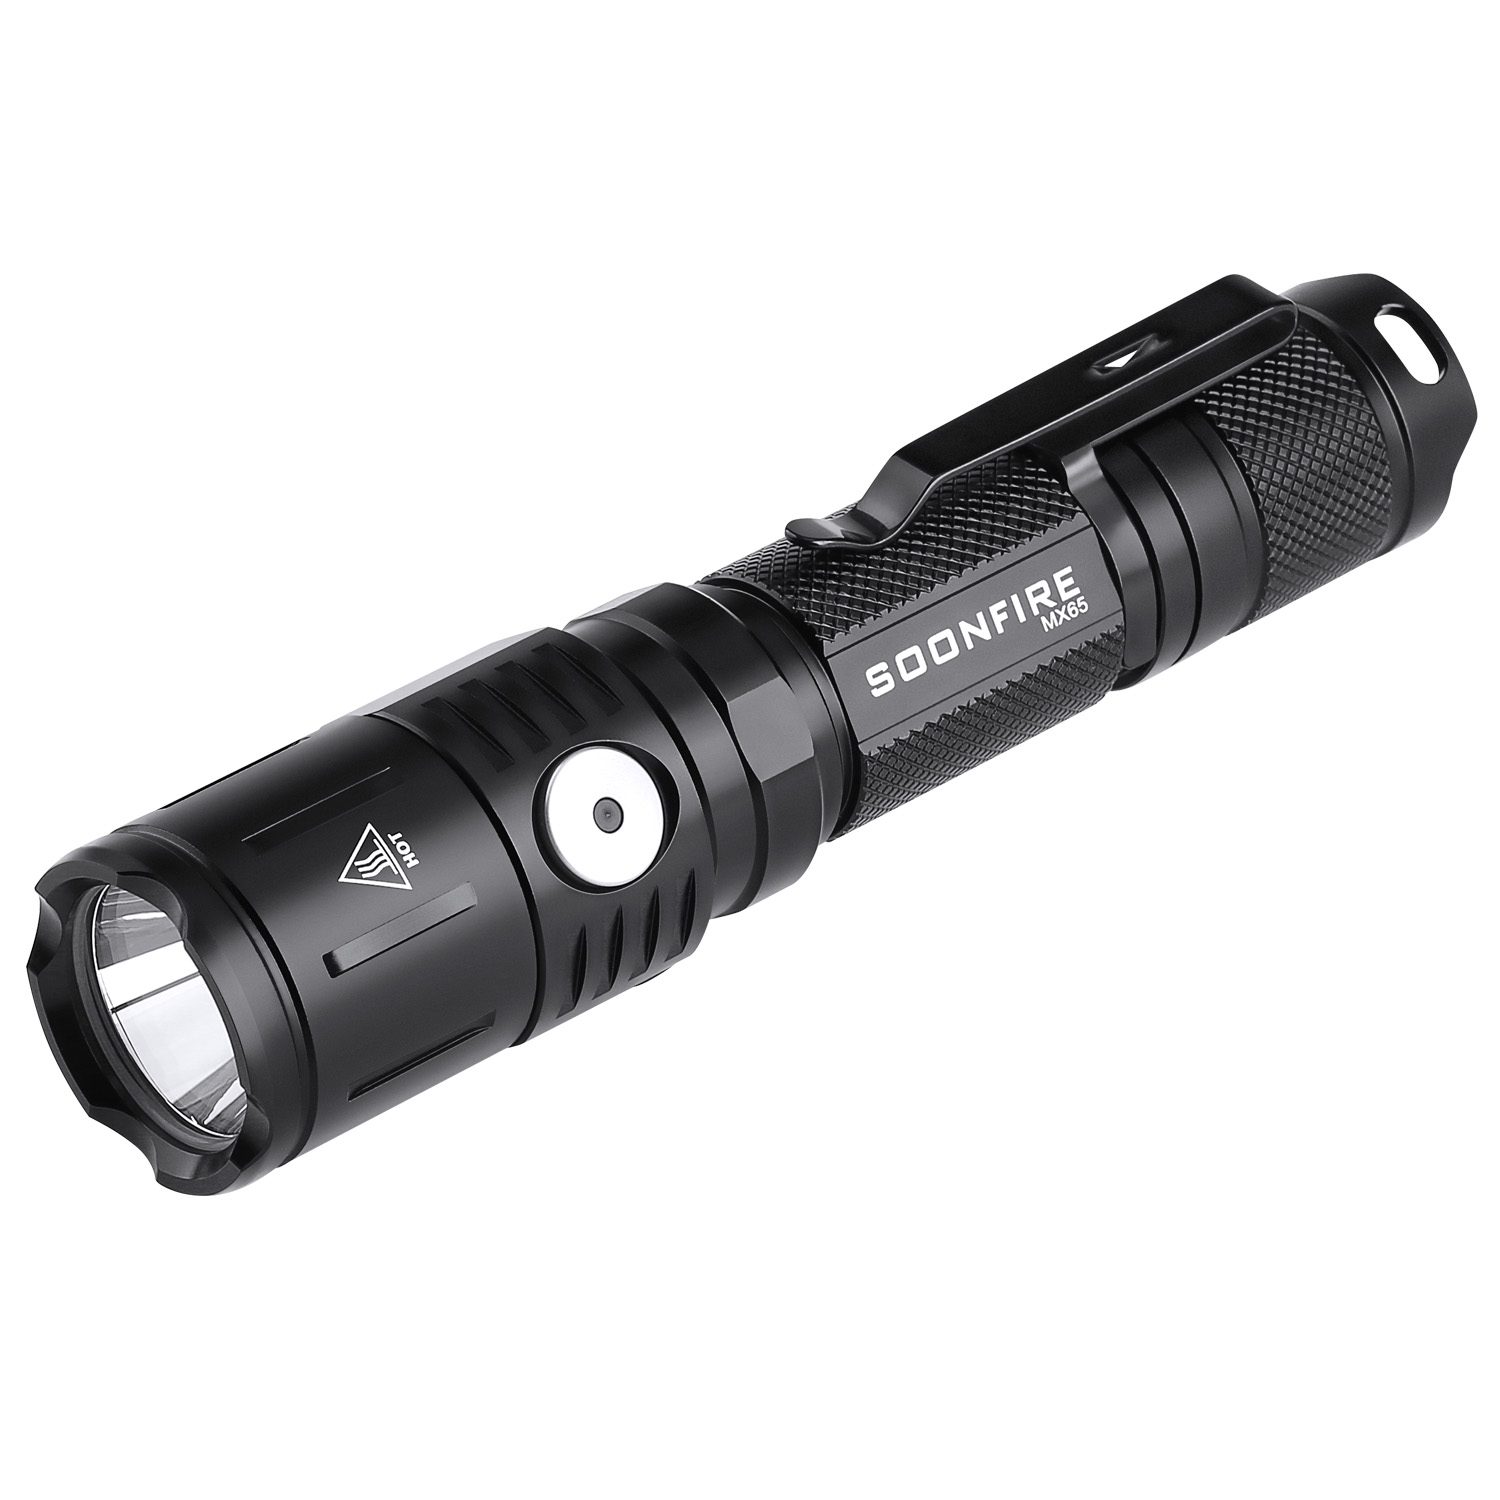 Soonfire MX Series 1060 Lumens Tactical Flashlight(Black)